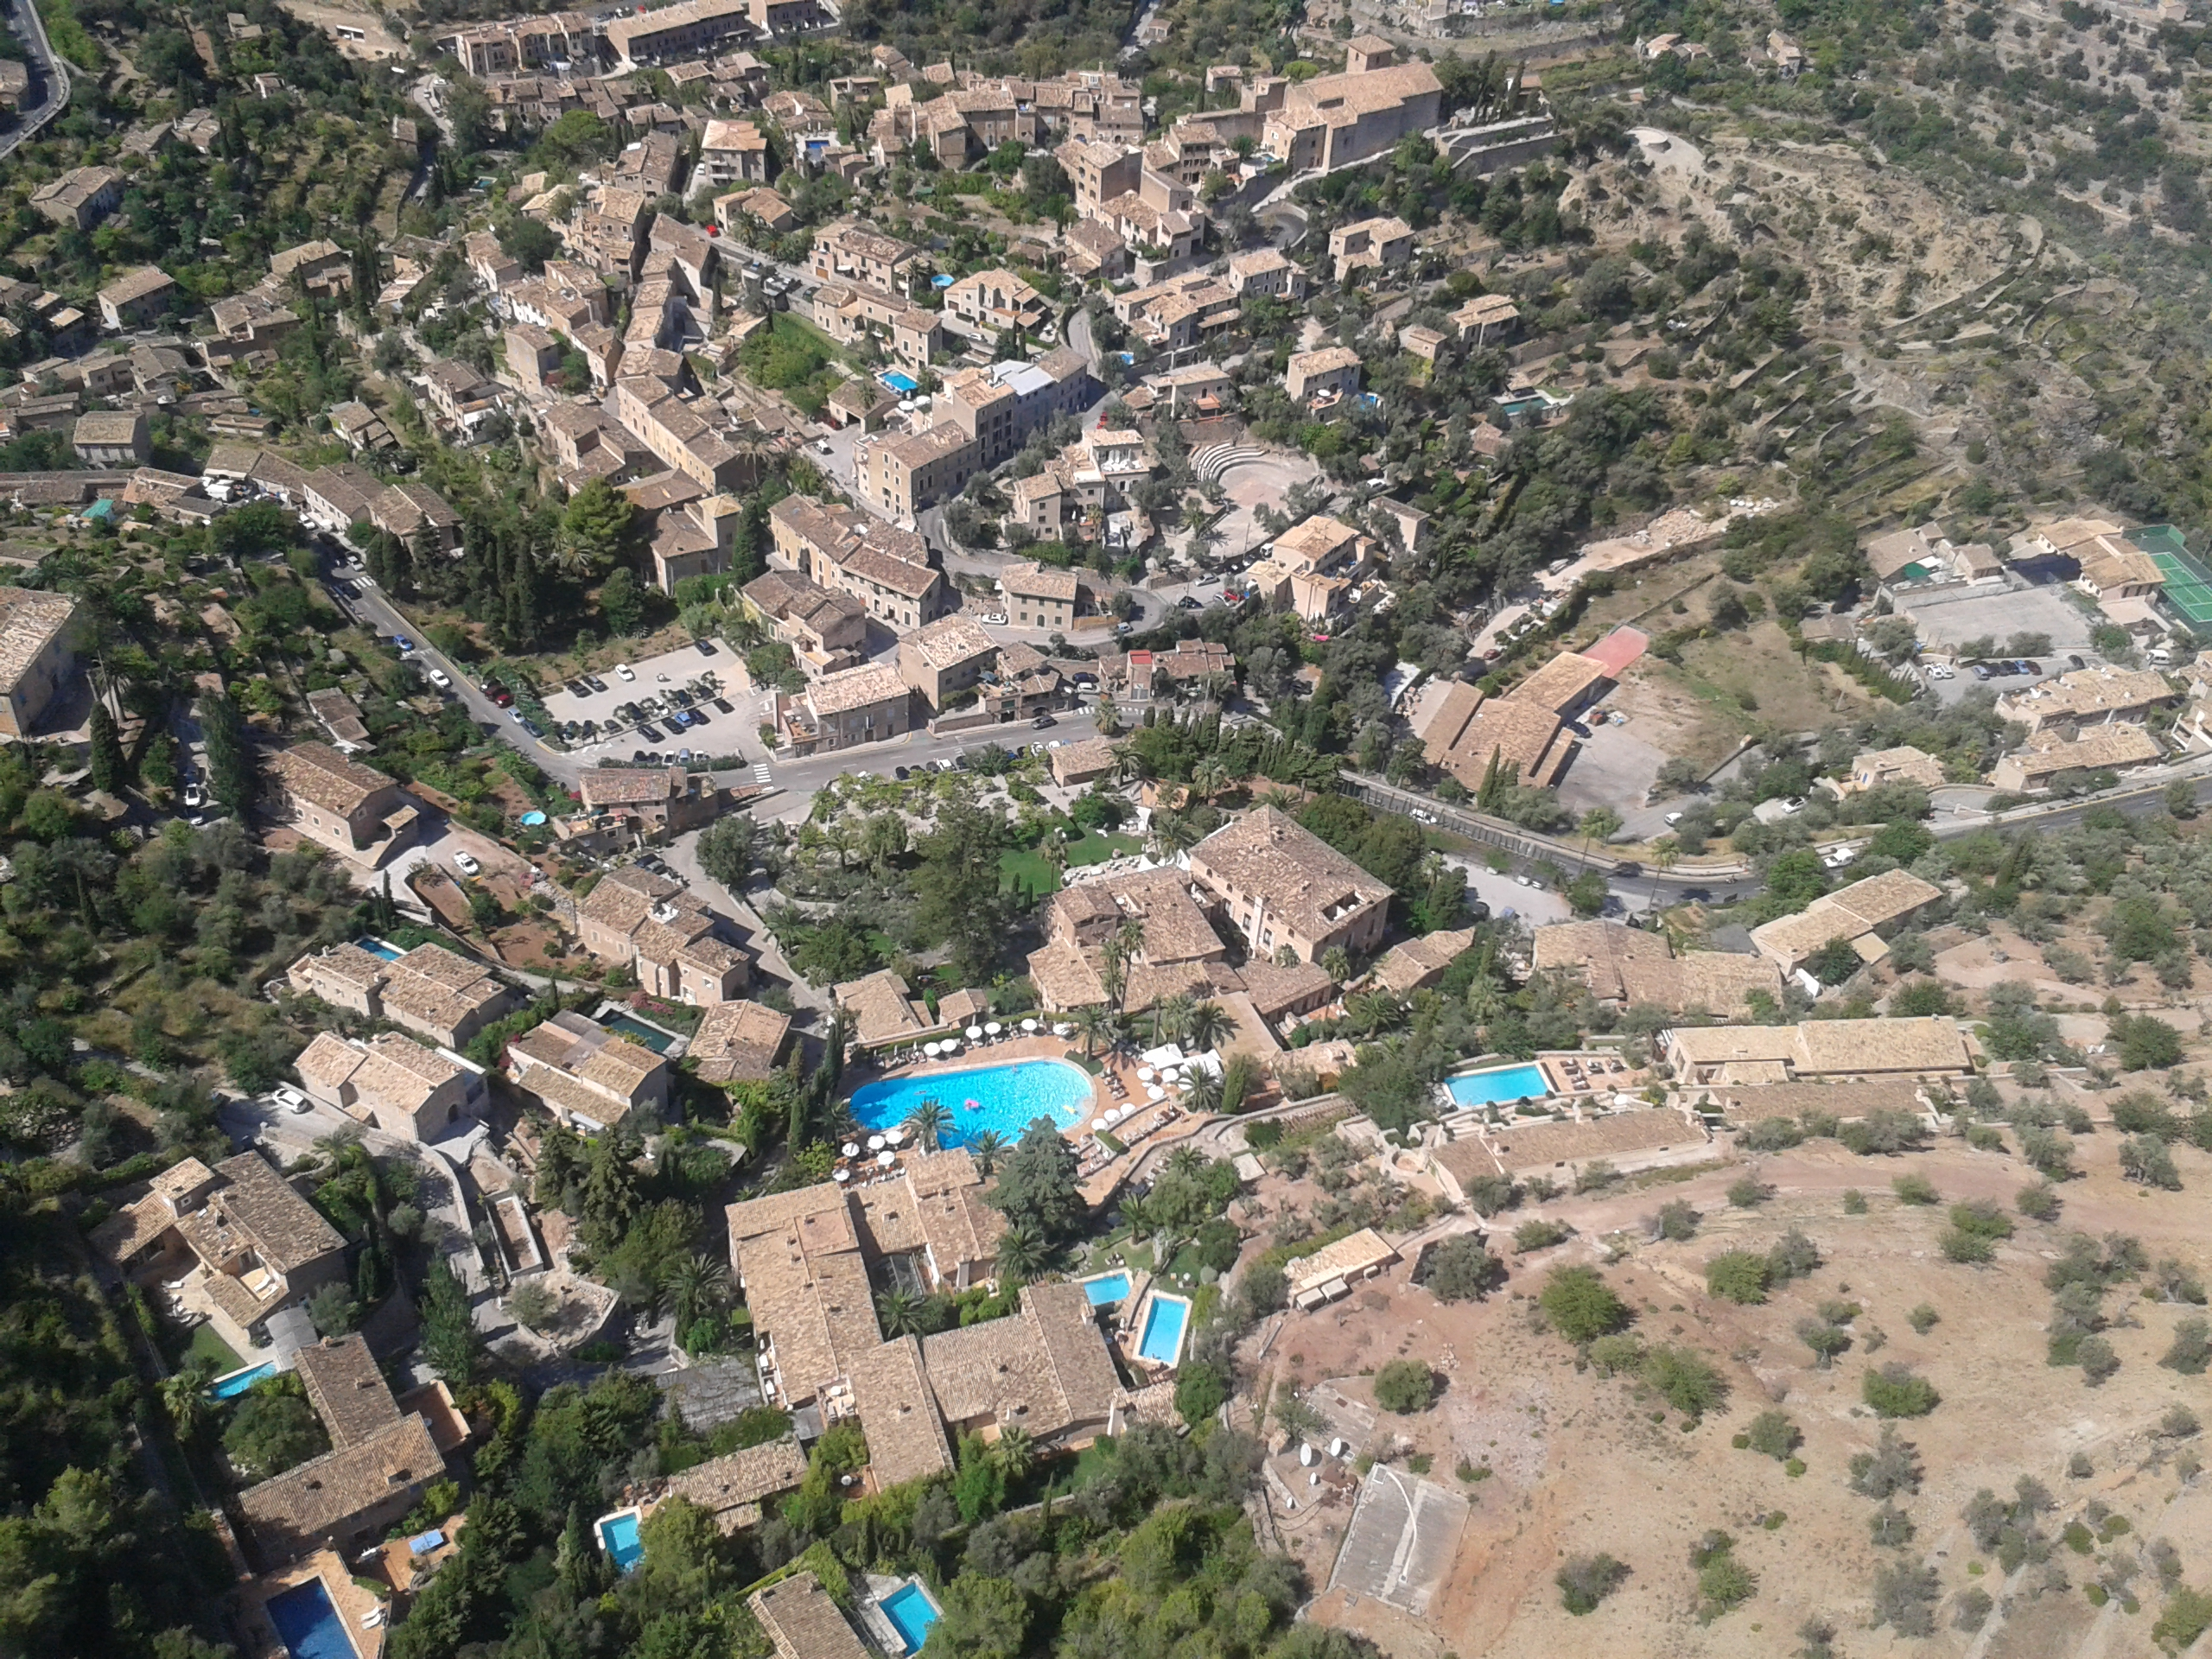 The hilltop town of Deia from the sky